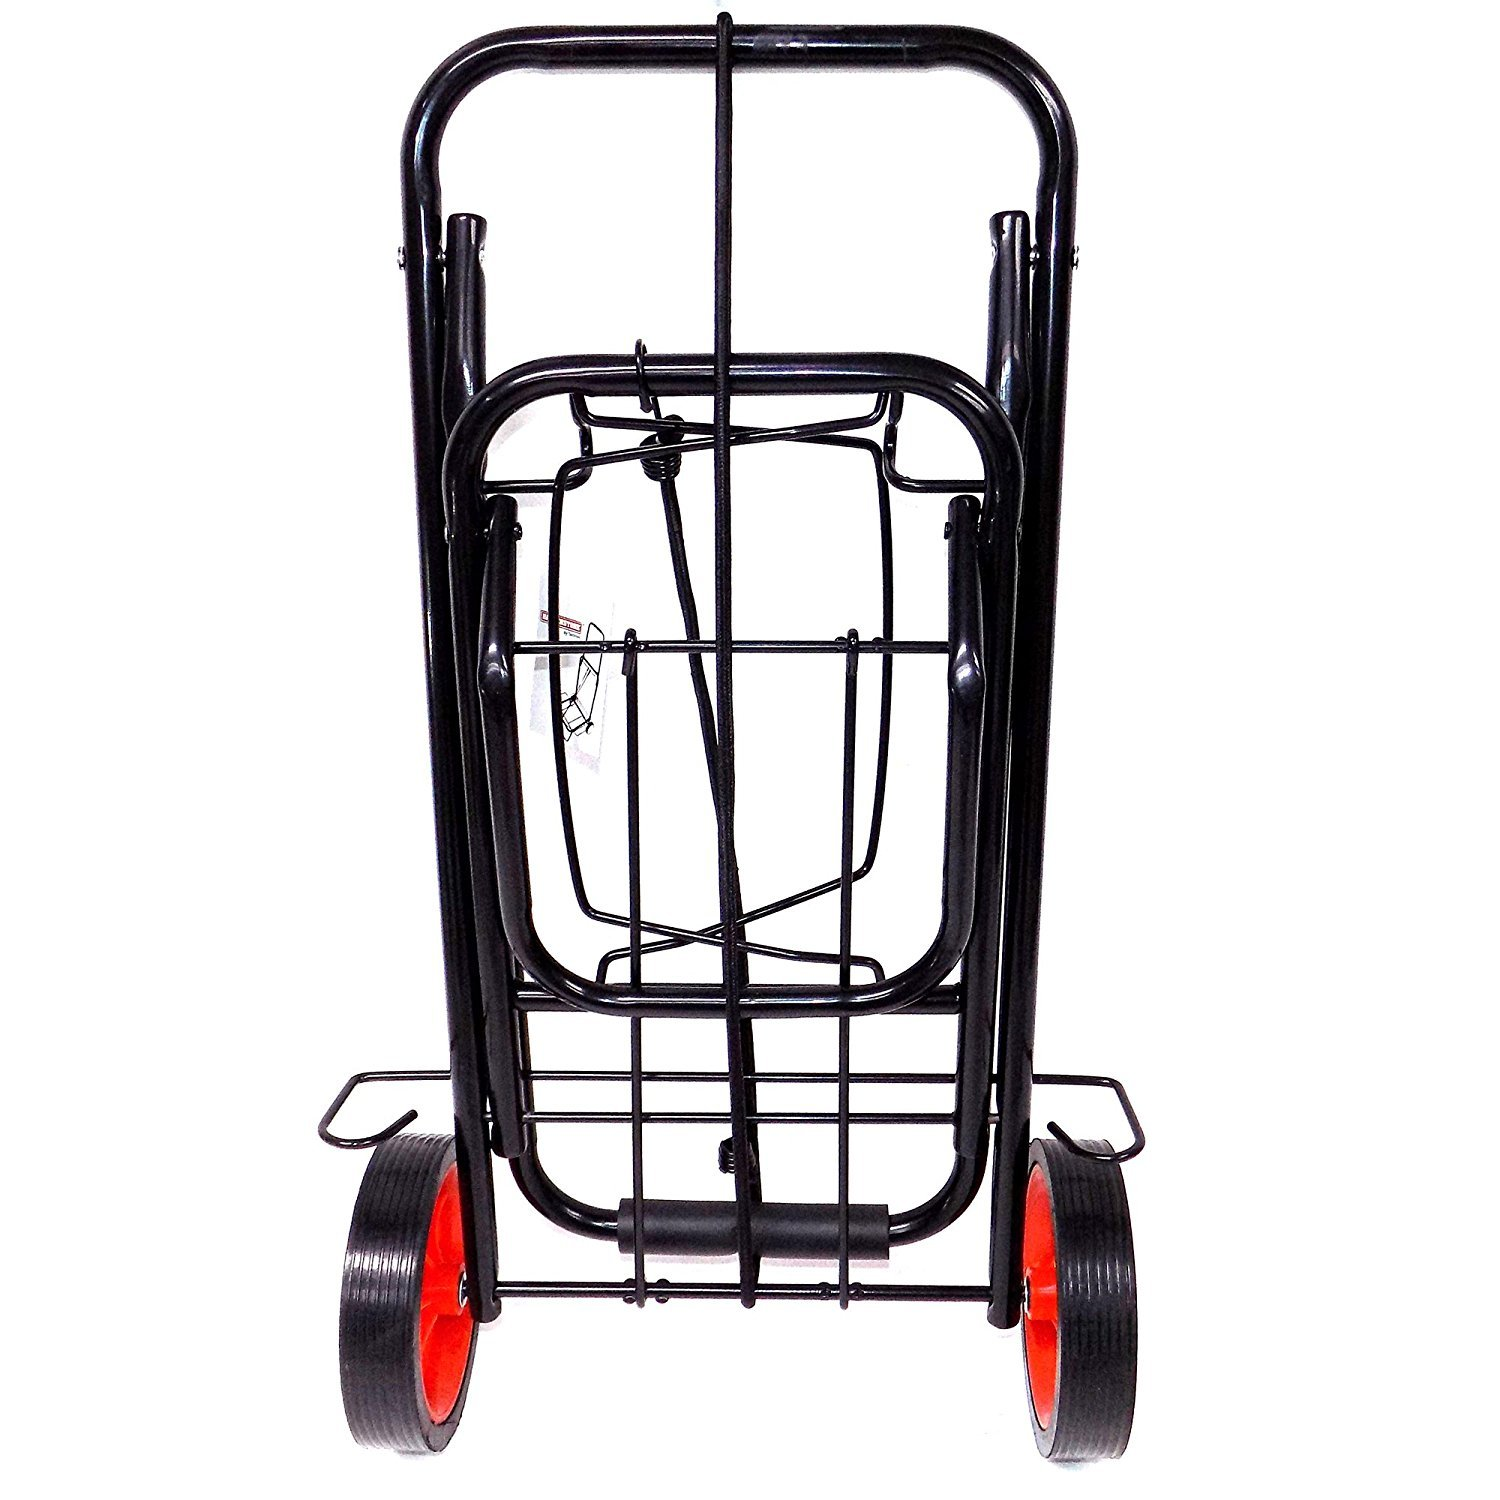 Portable Folding Luggage Cart, Lightweight Metal Carry Tool Travel Luggage Cards by THE UM24 (Image #2)